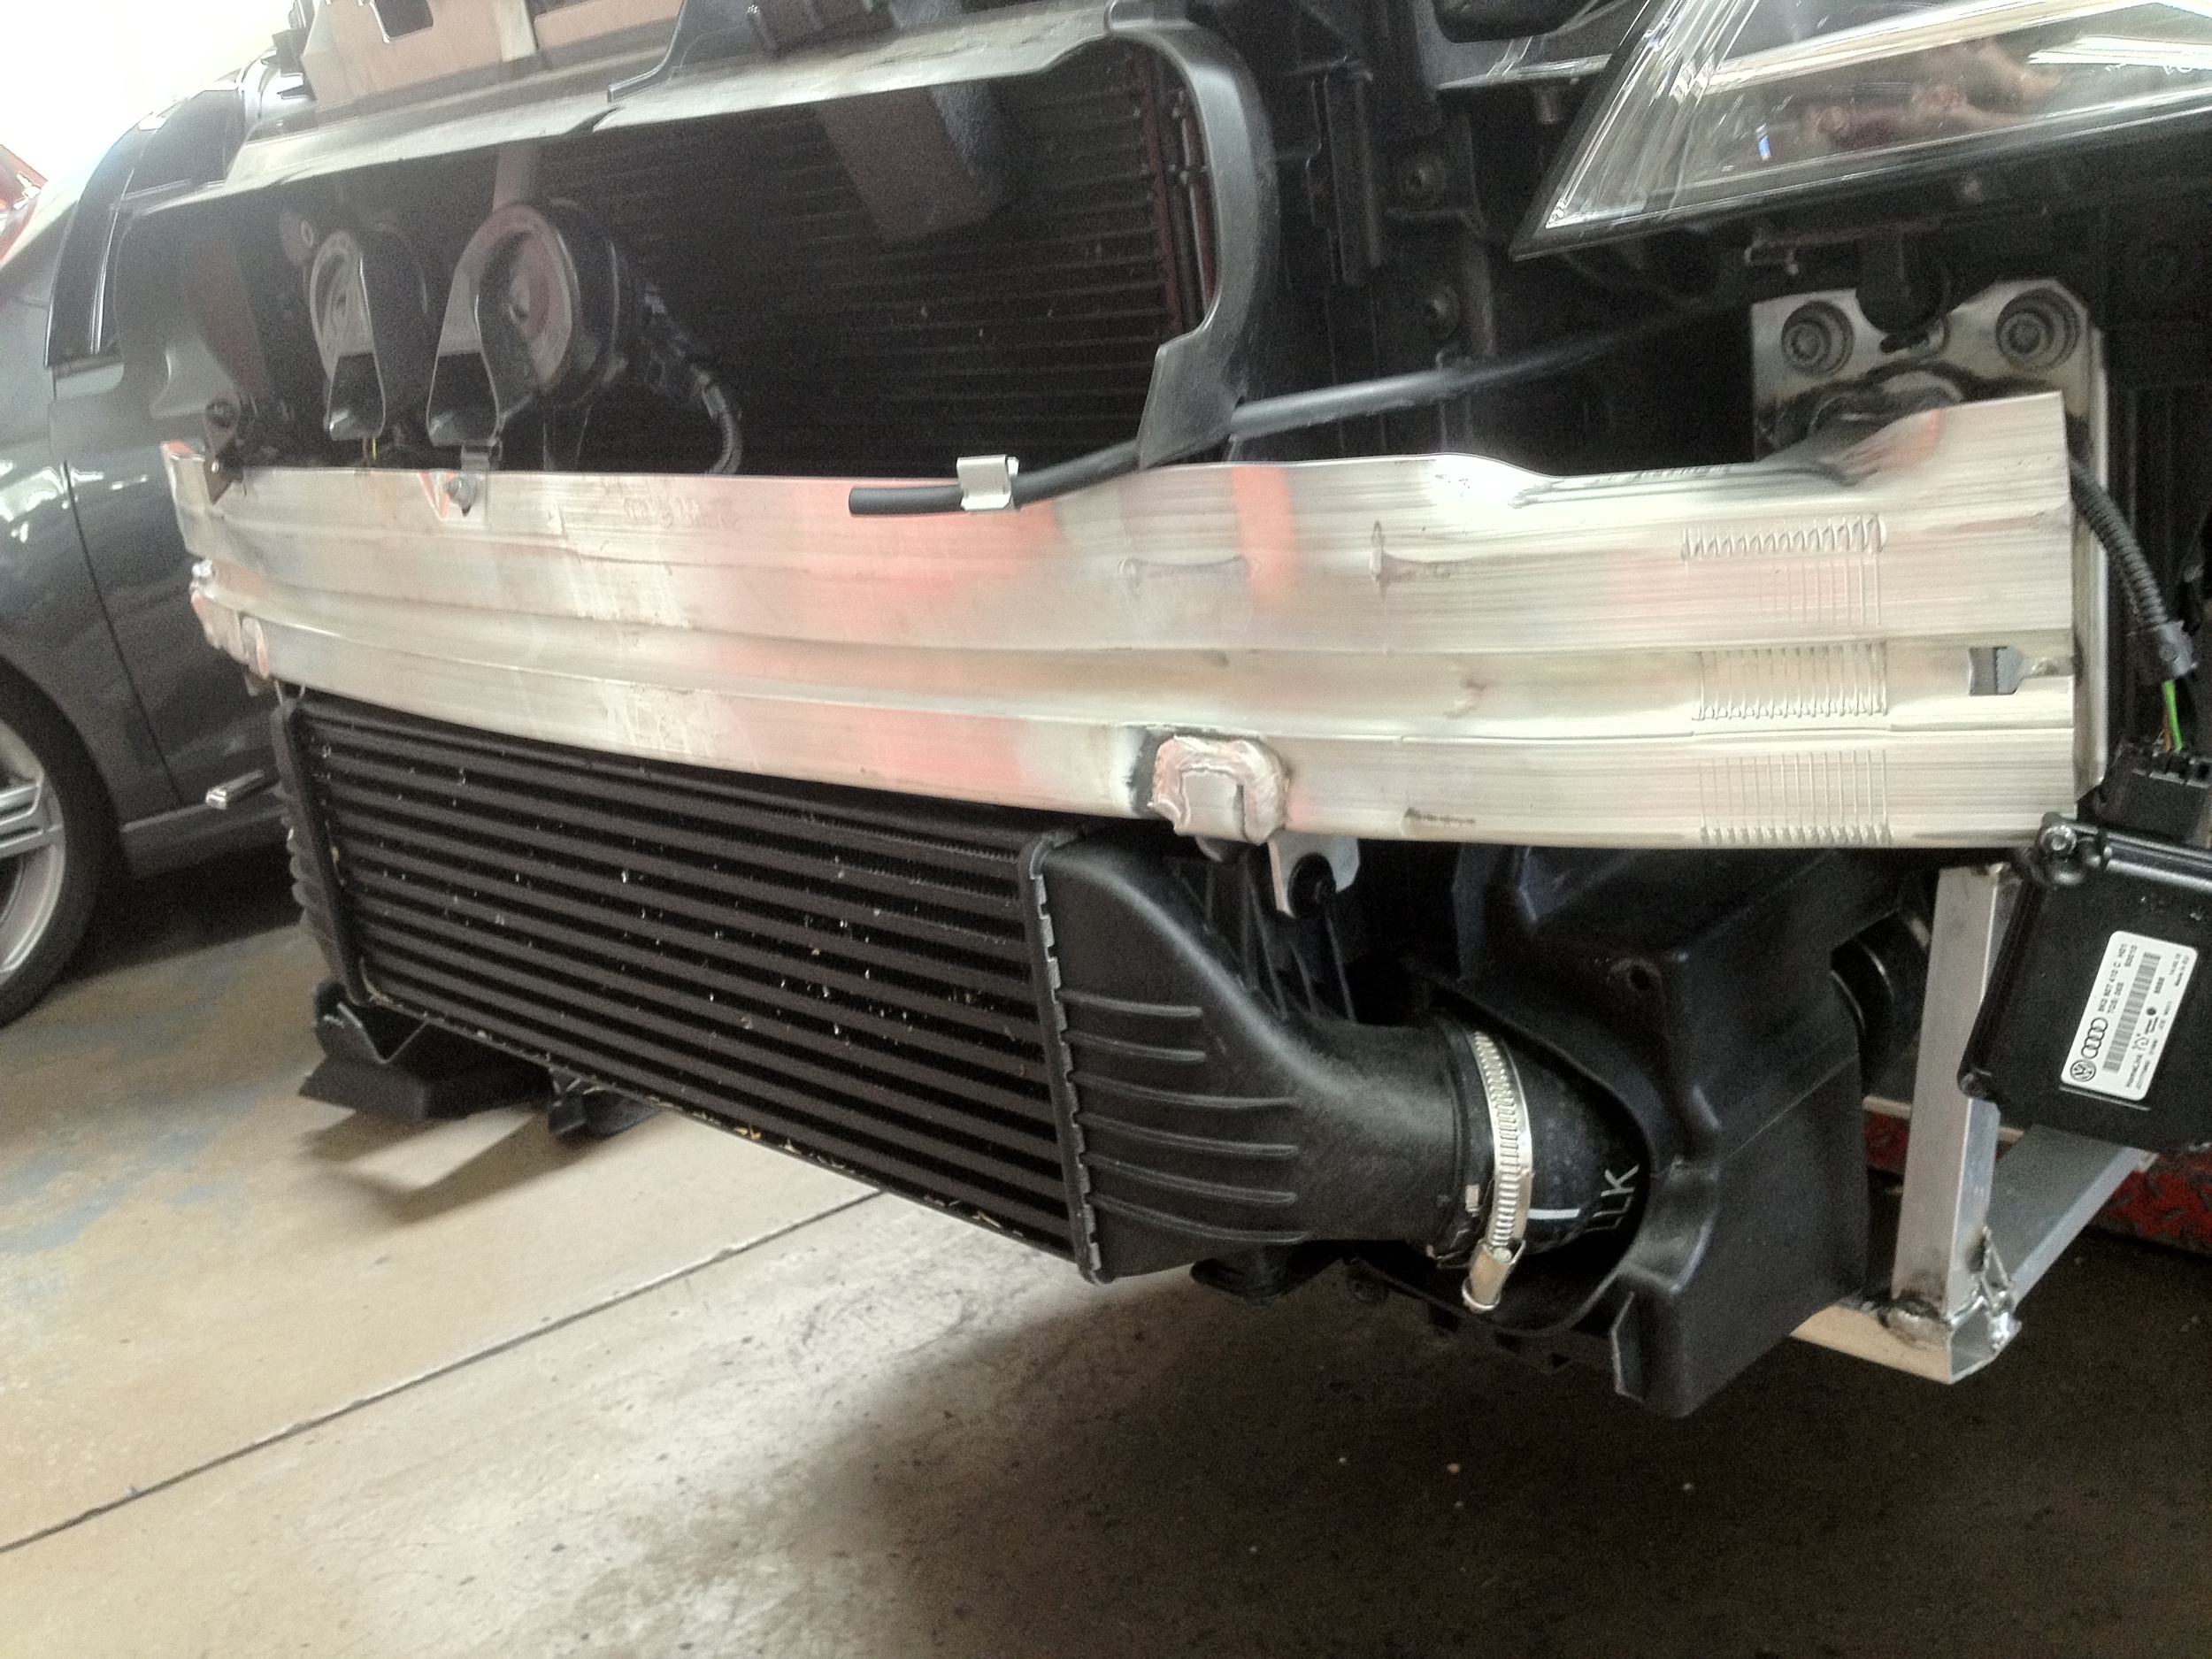 Original intercooler